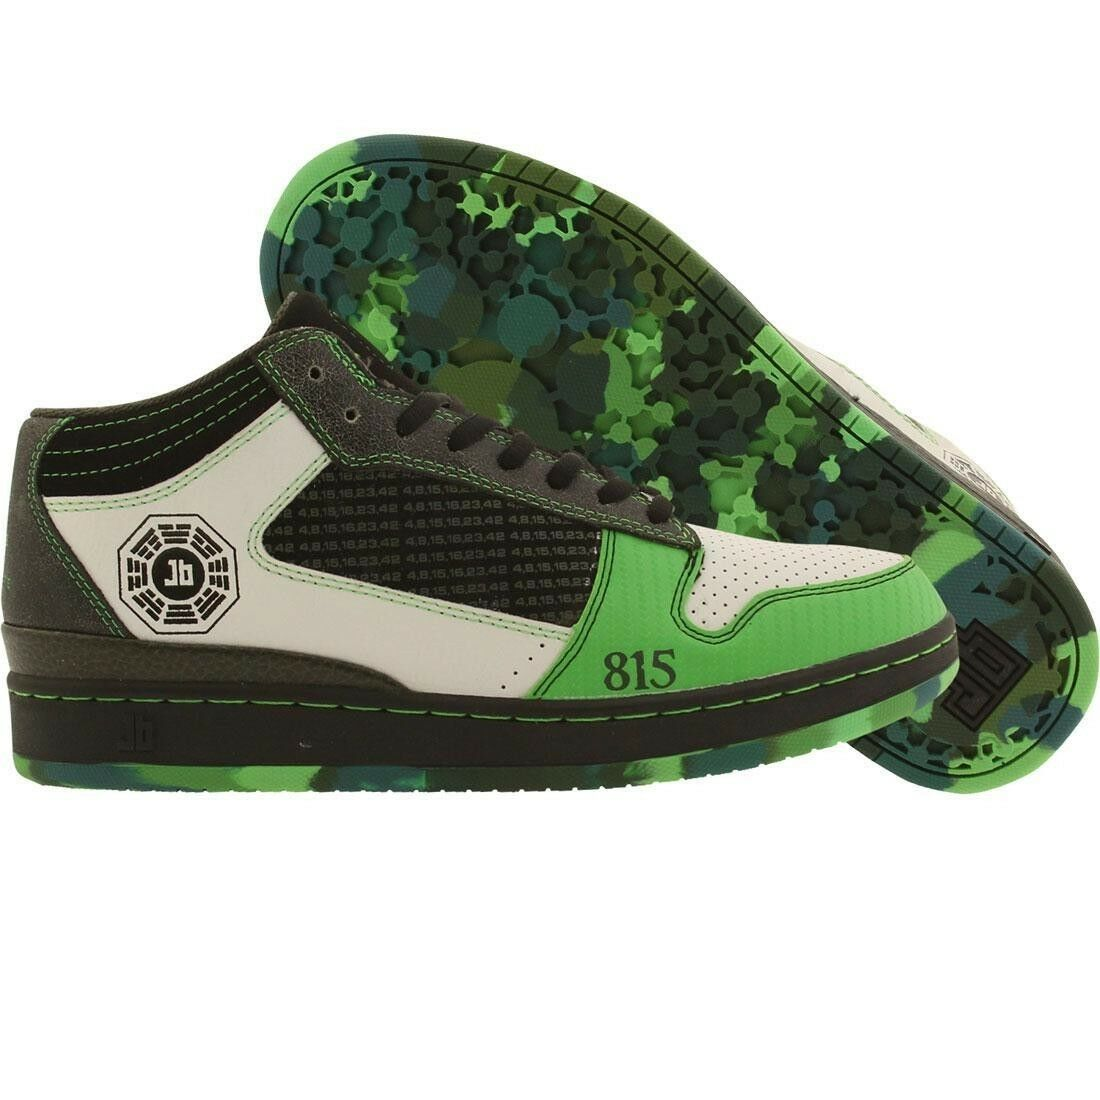 $130.00 JB Classics Getlo Mid / Eight-One-Five (lawn / black / Mid antique) 200-08 51a6ff